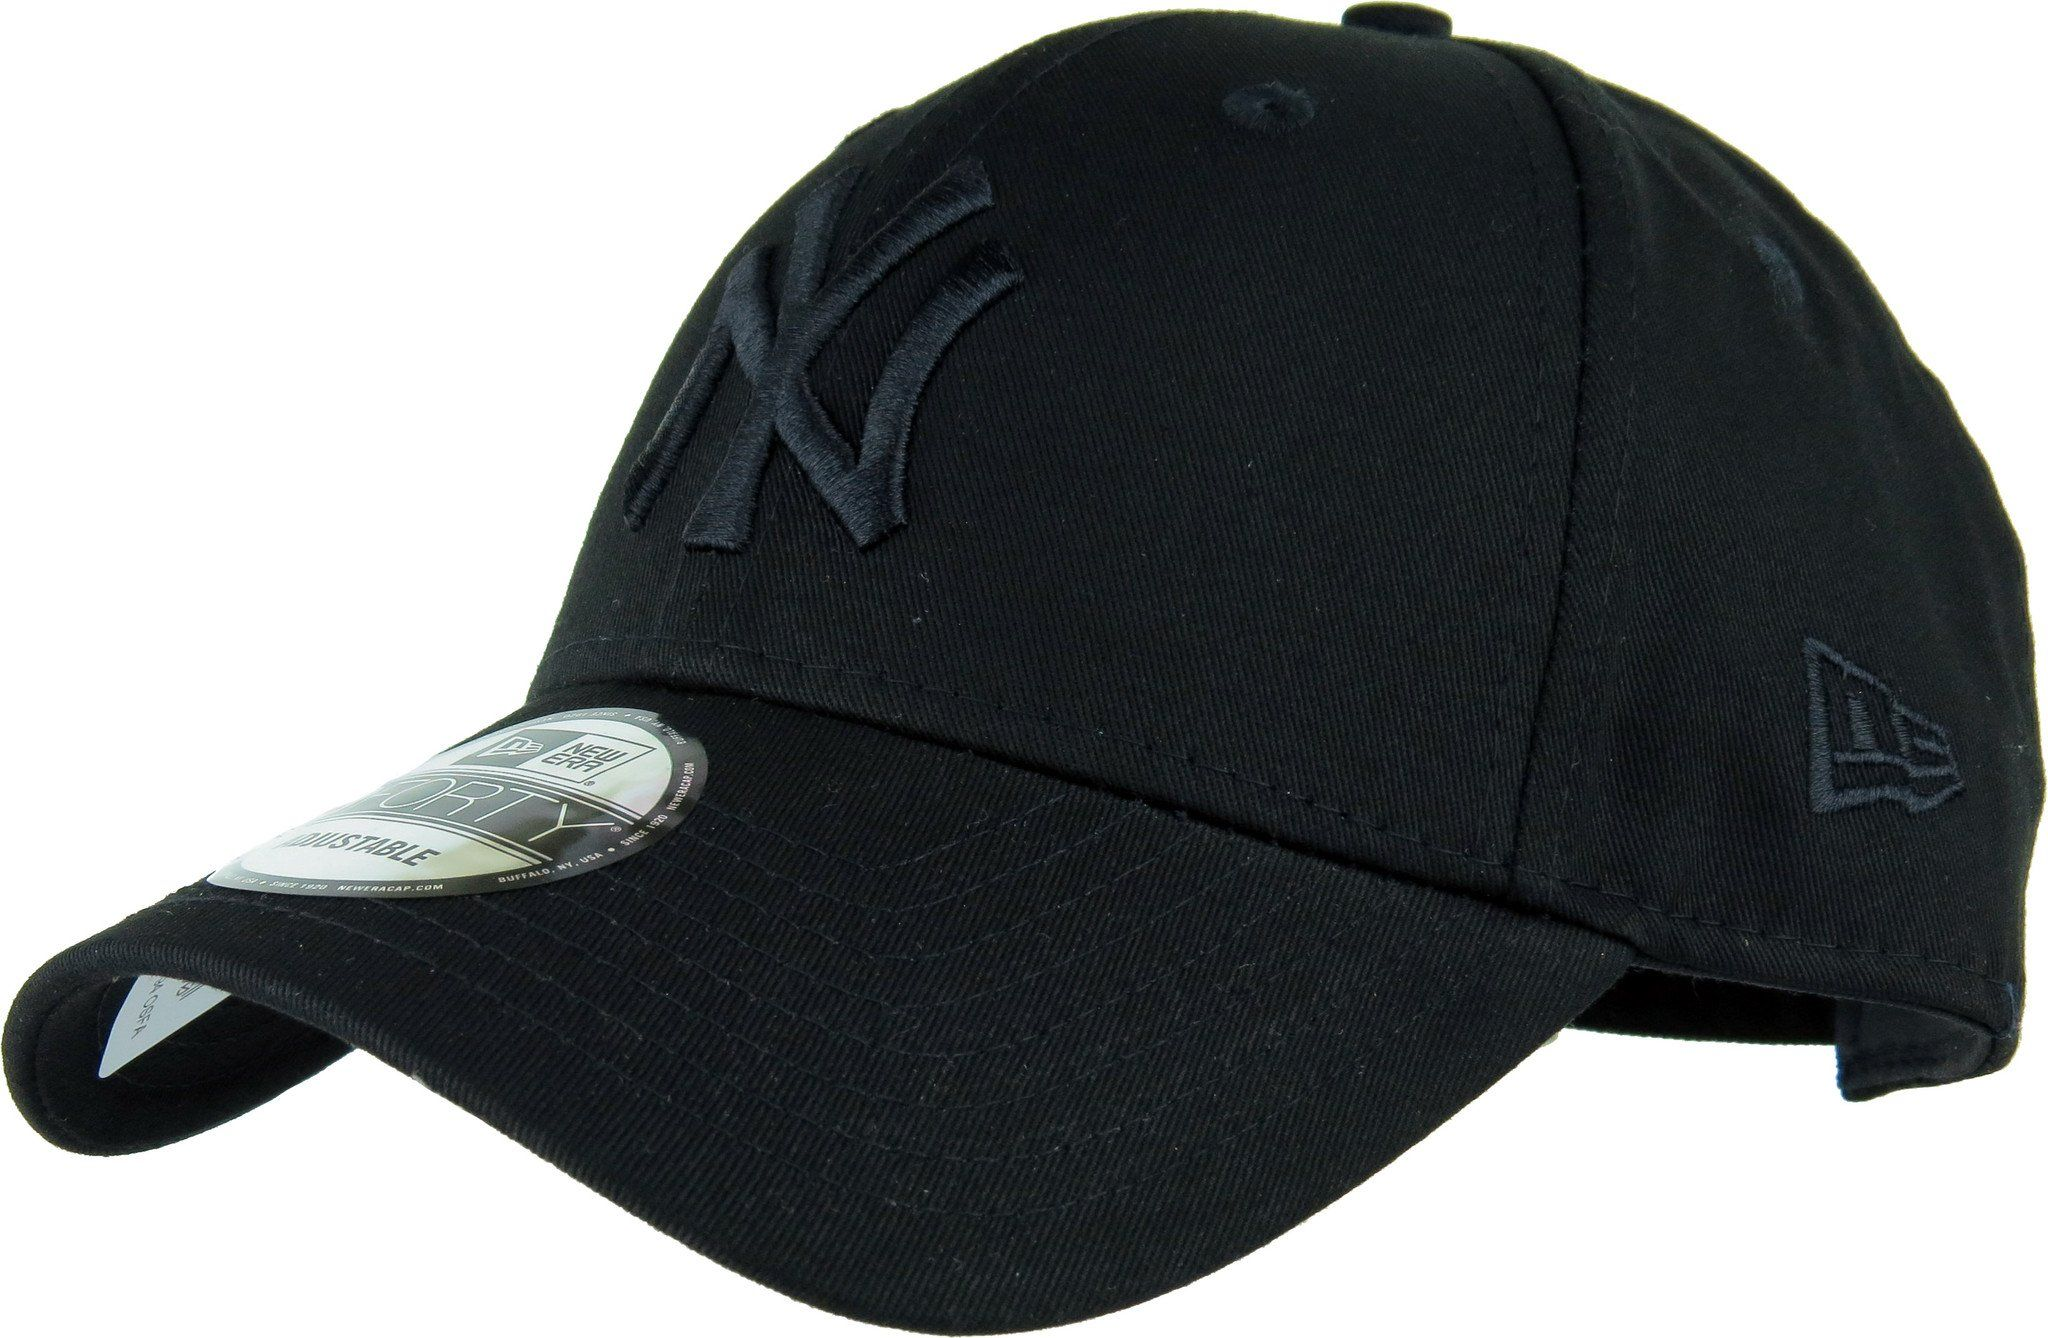 NY Yankees New Era 940 League Essential Baseball Cap - Black Black ... 6264094048e